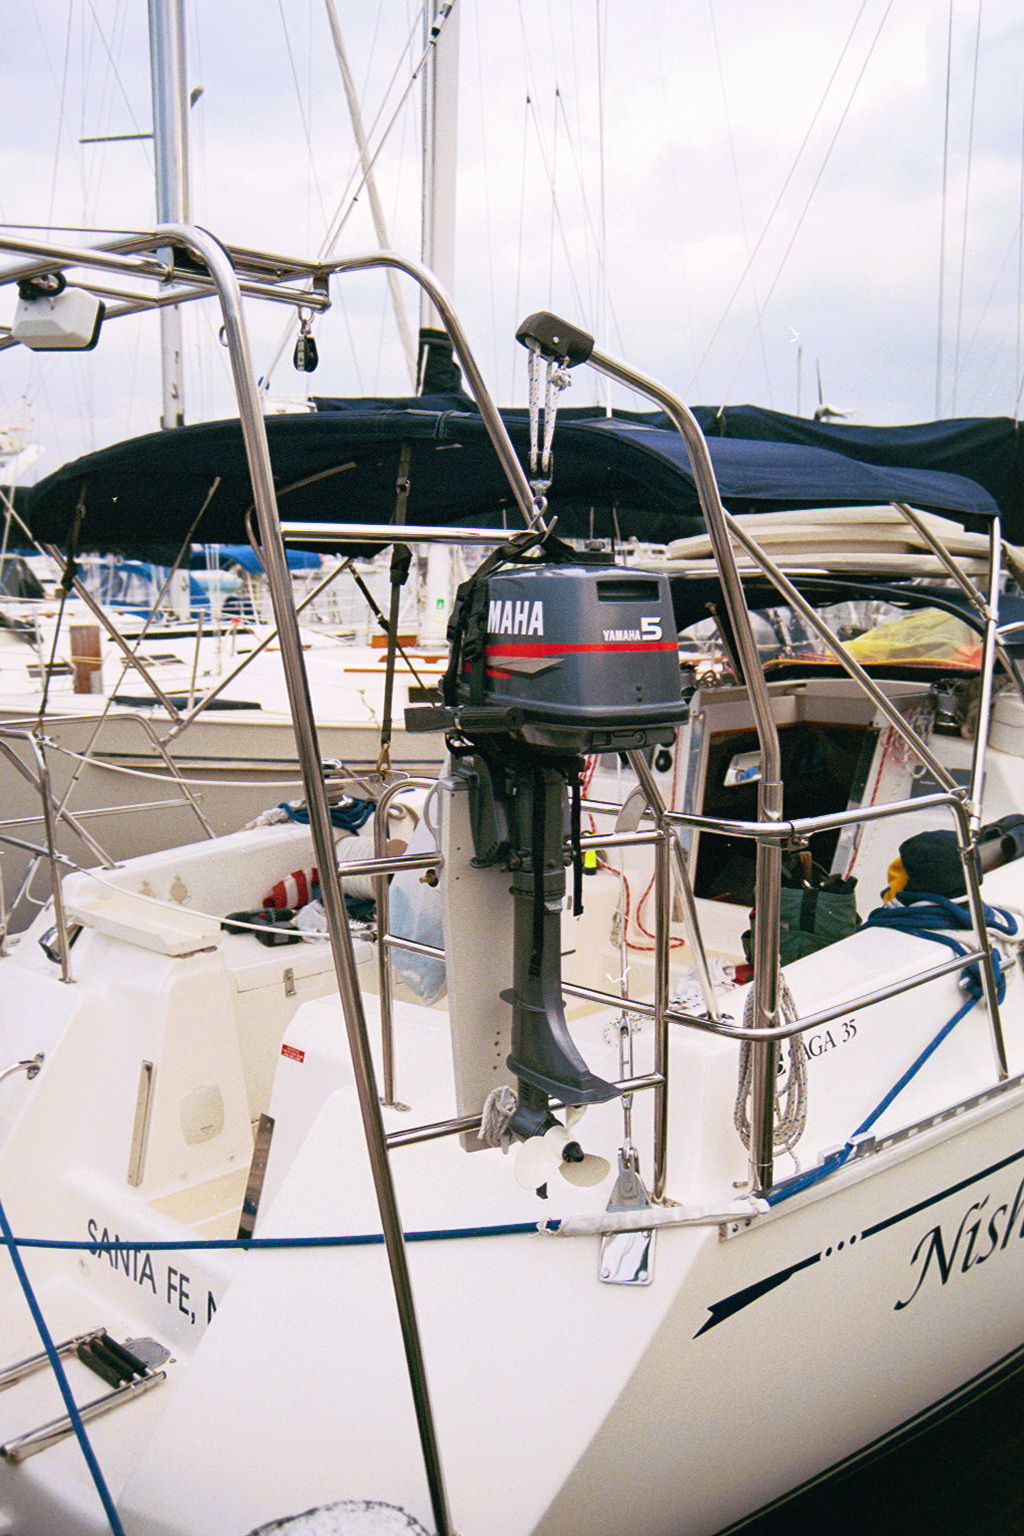 Outboard Motor Rigging Used Outboard Motors For Sale